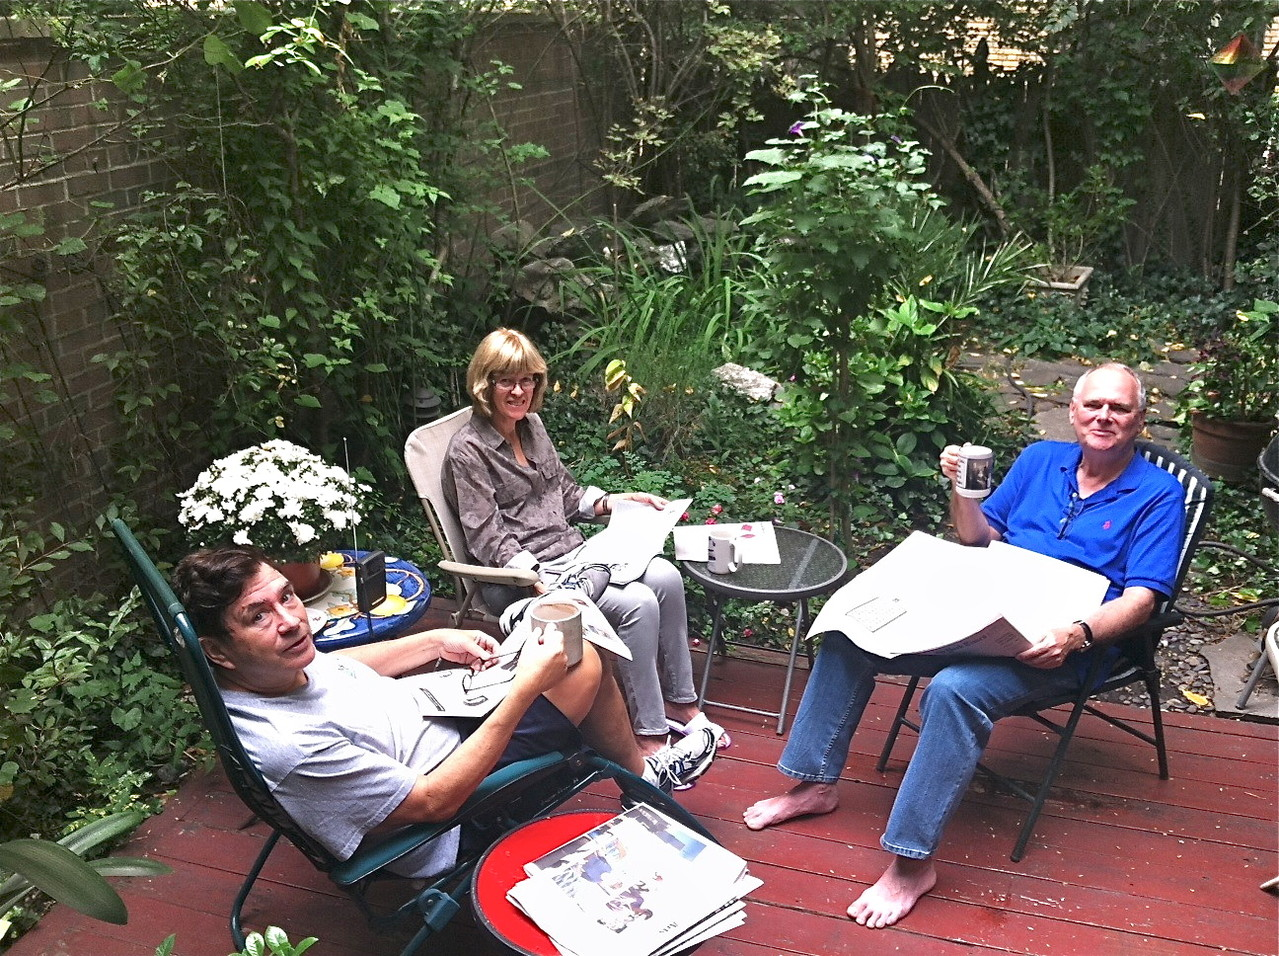 John, Nancy, & Bernd relax in our backyard.